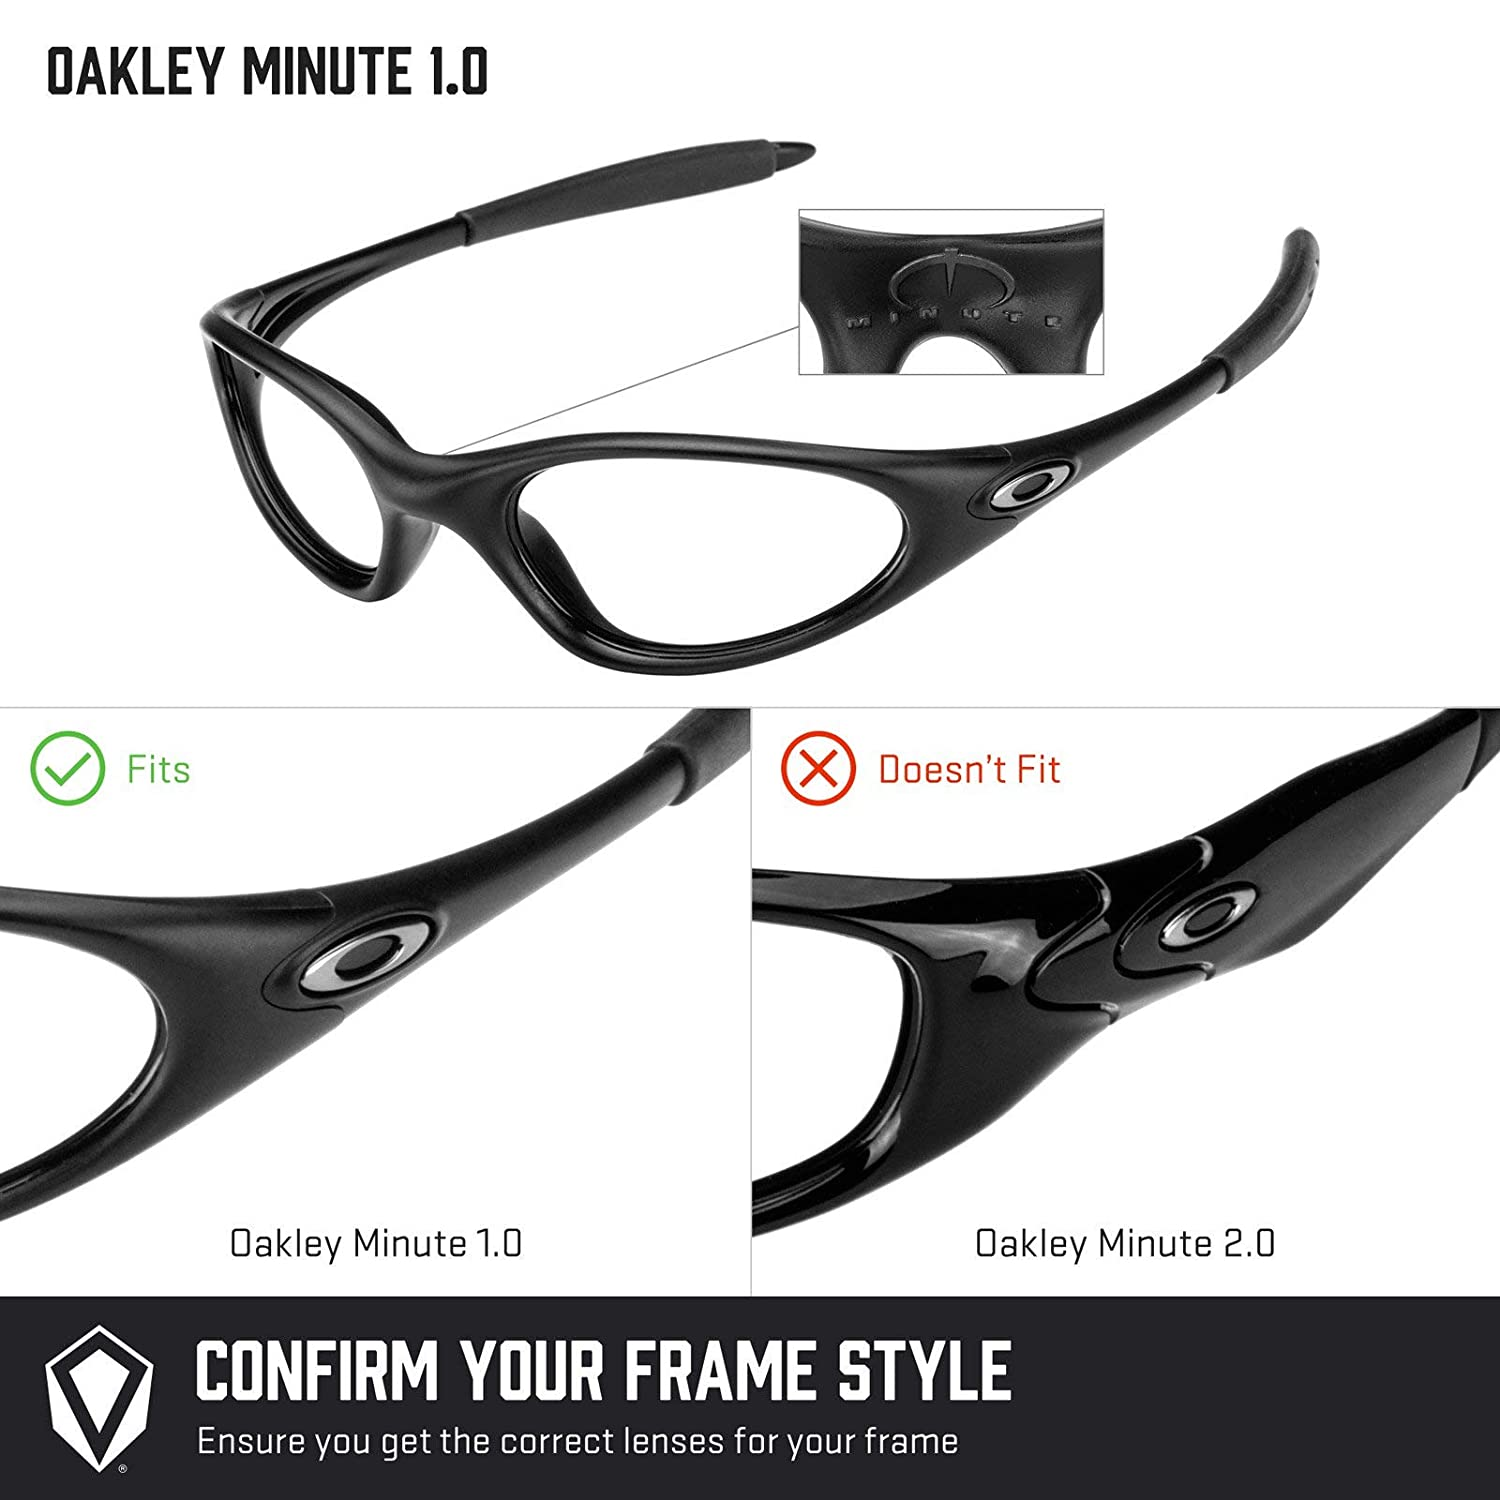 b736ba54ff5 Revant Replacement Lenses for Oakley Minute 1.0 Elite Adapt Grey  Photochromic  Amazon.co.uk  Clothing